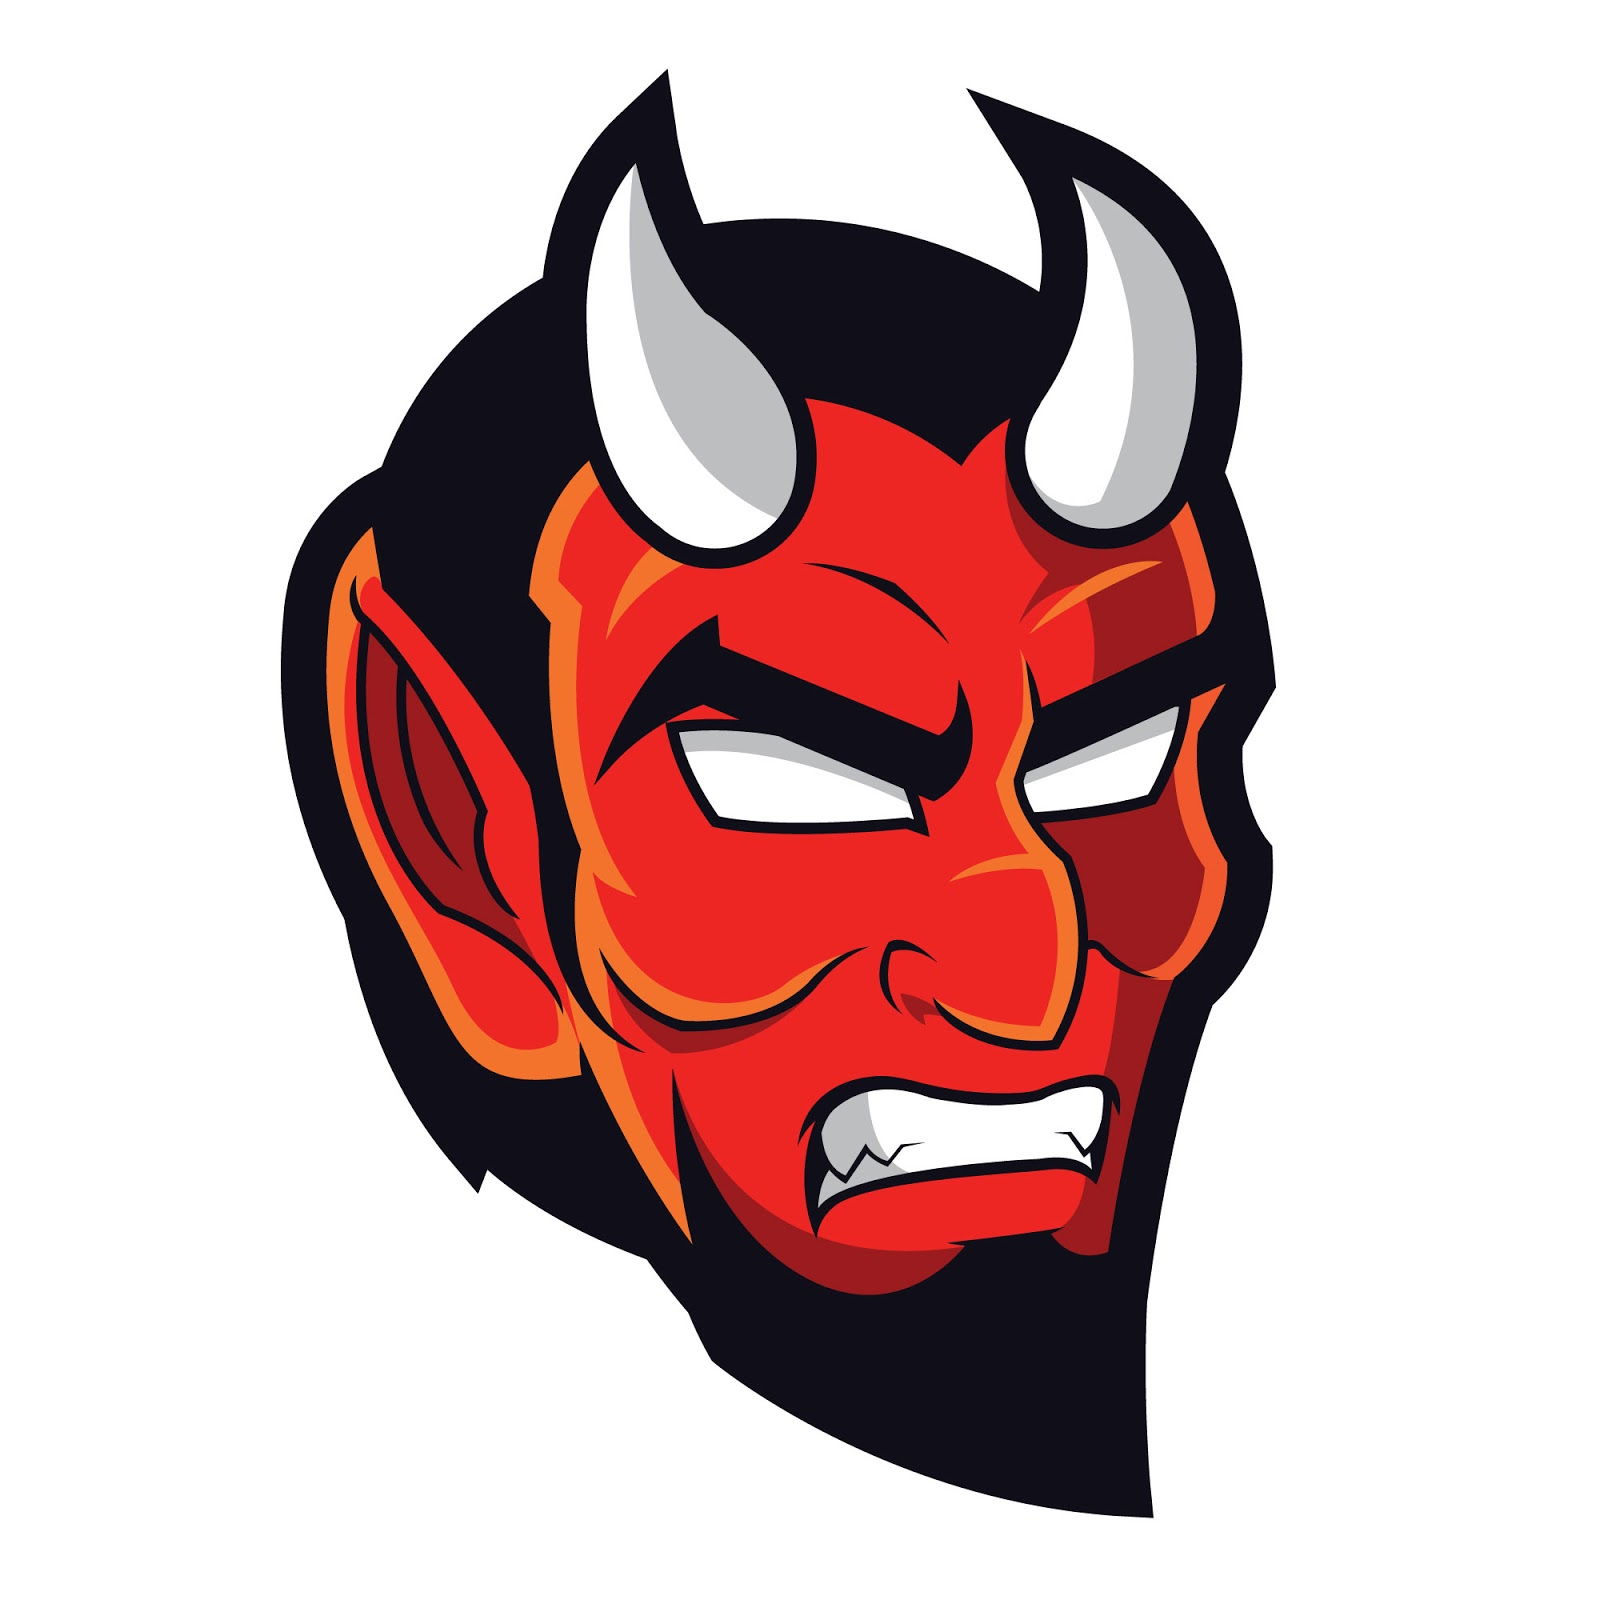 Devil Mascot Logo Free Download Vector CDR, AI, EPS and PNG Formats